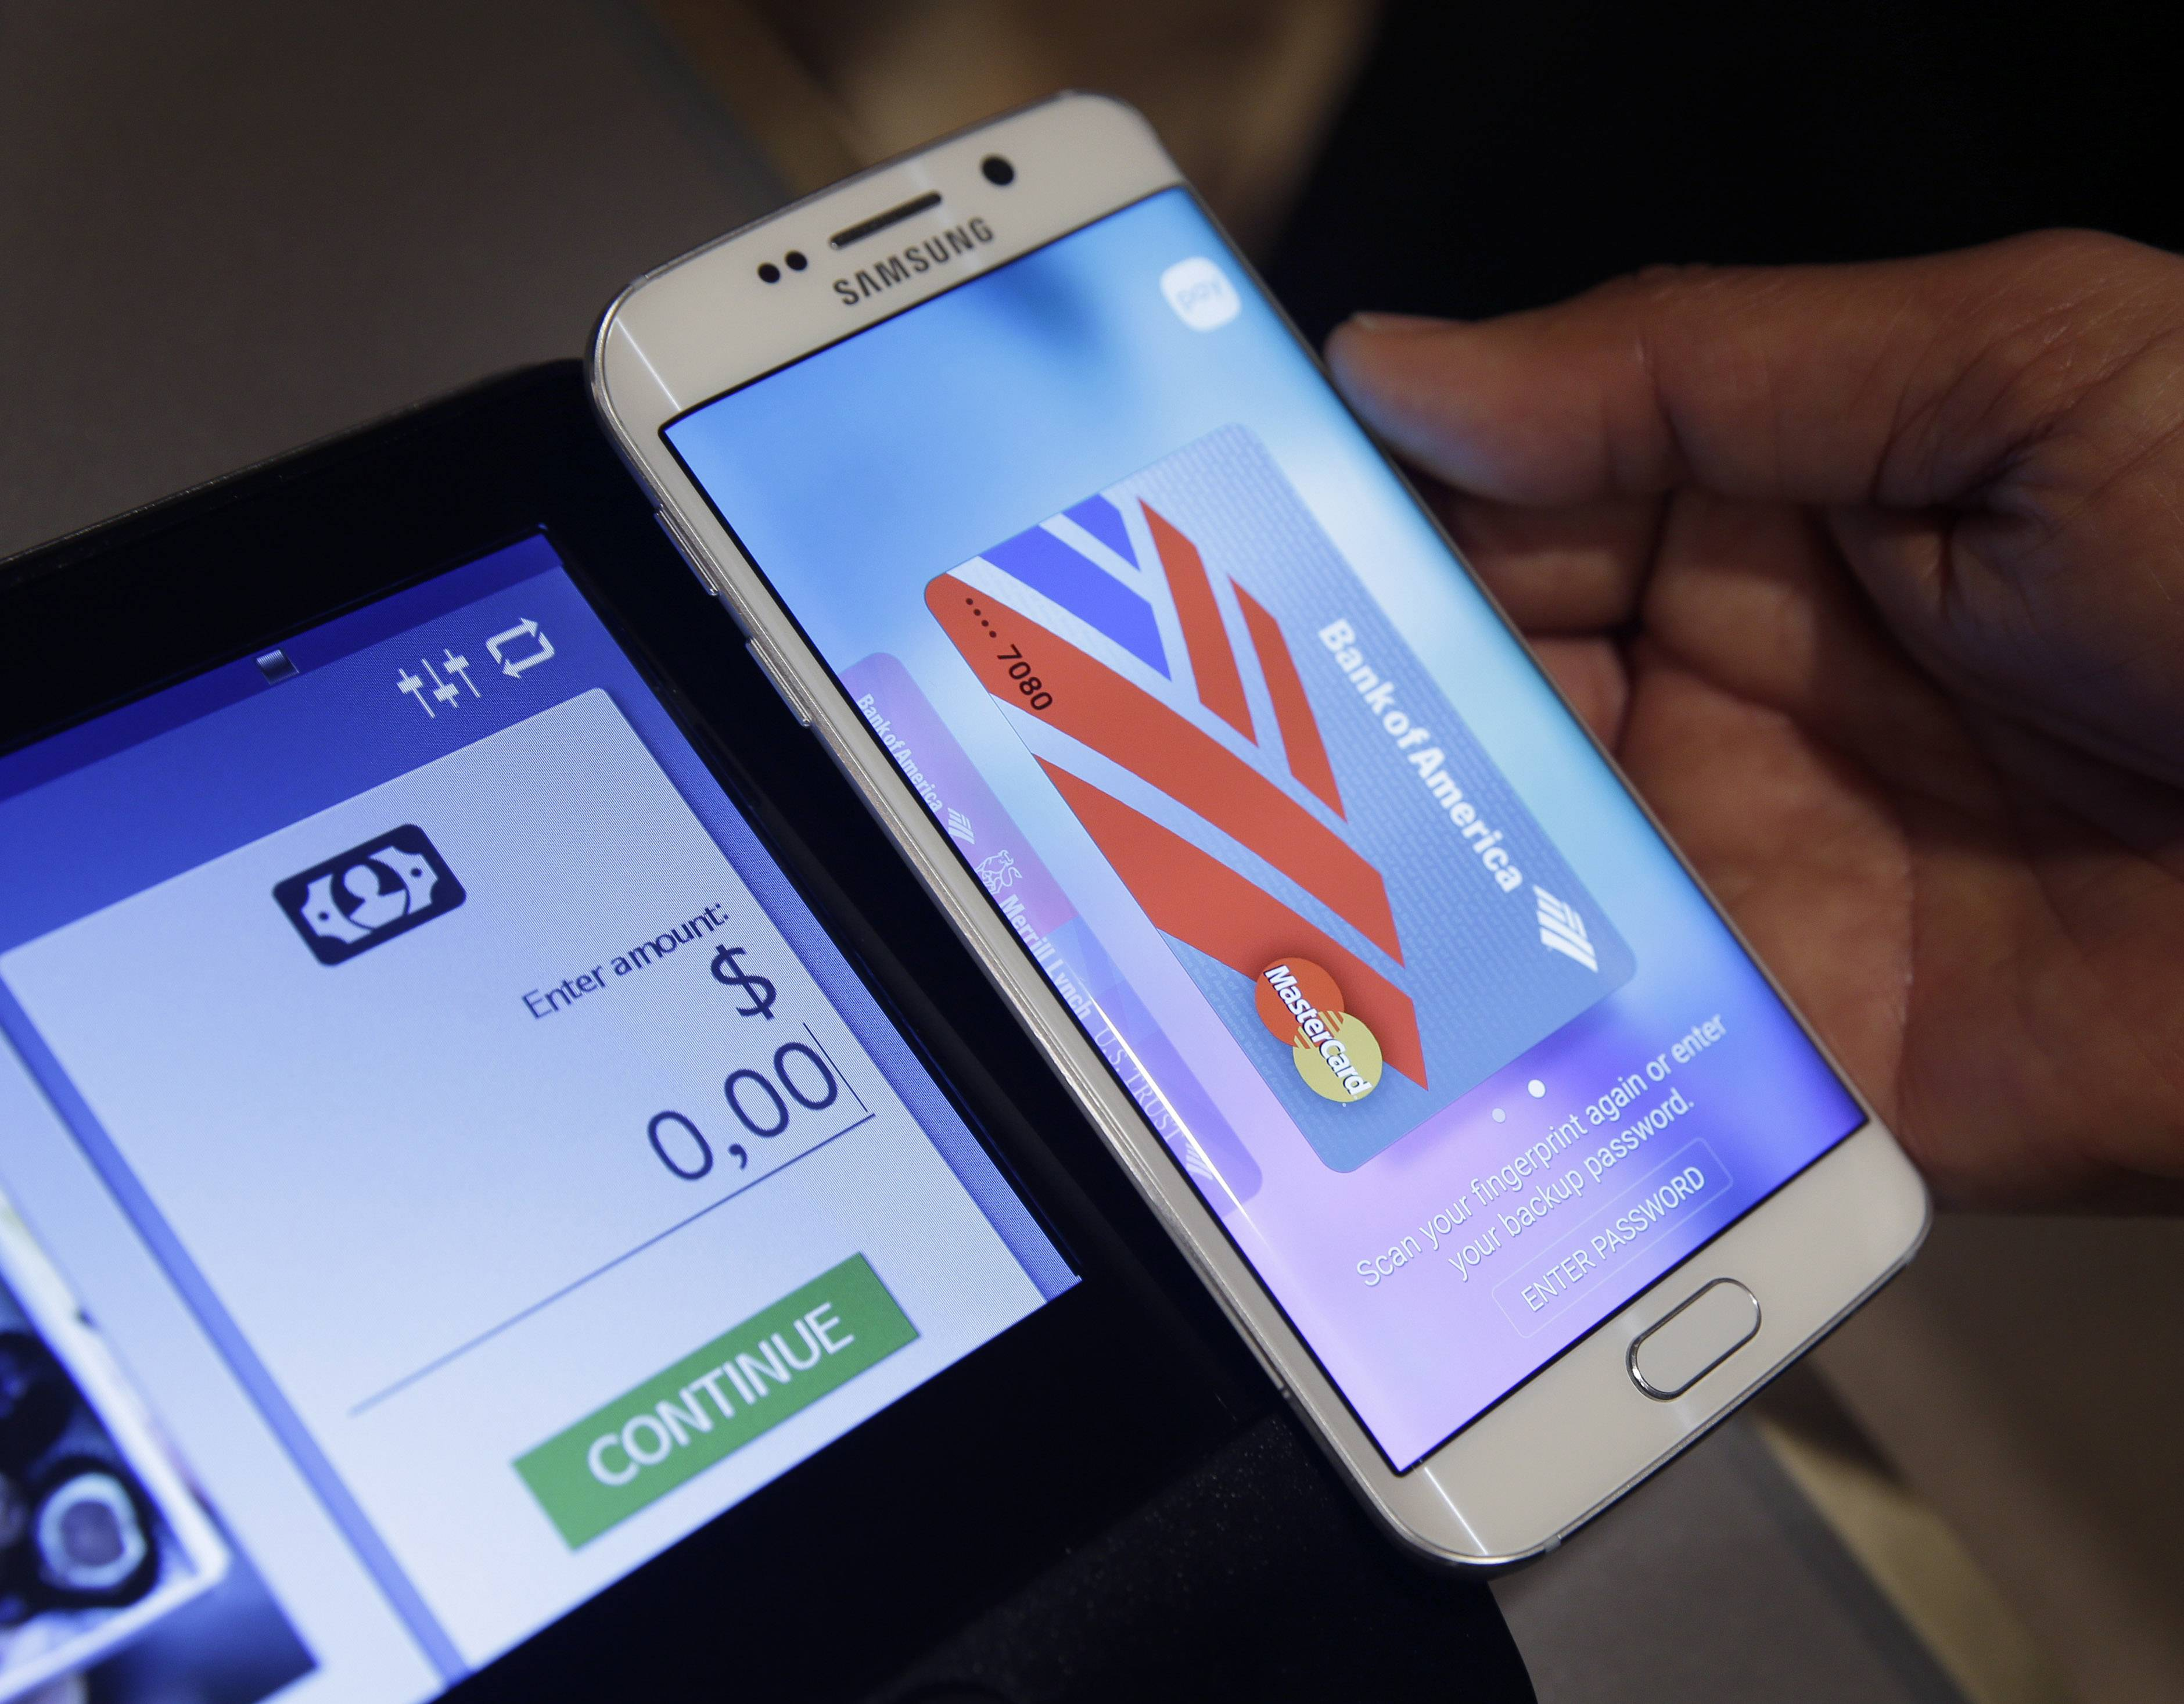 Mobile wallets come in different digital forms. There are device specific platforms, such as Apple Pay and Samsung Pay, which are compatible with Apple and Samsung devices, respectively. Google Pay works with multiple platforms, including Android devices.